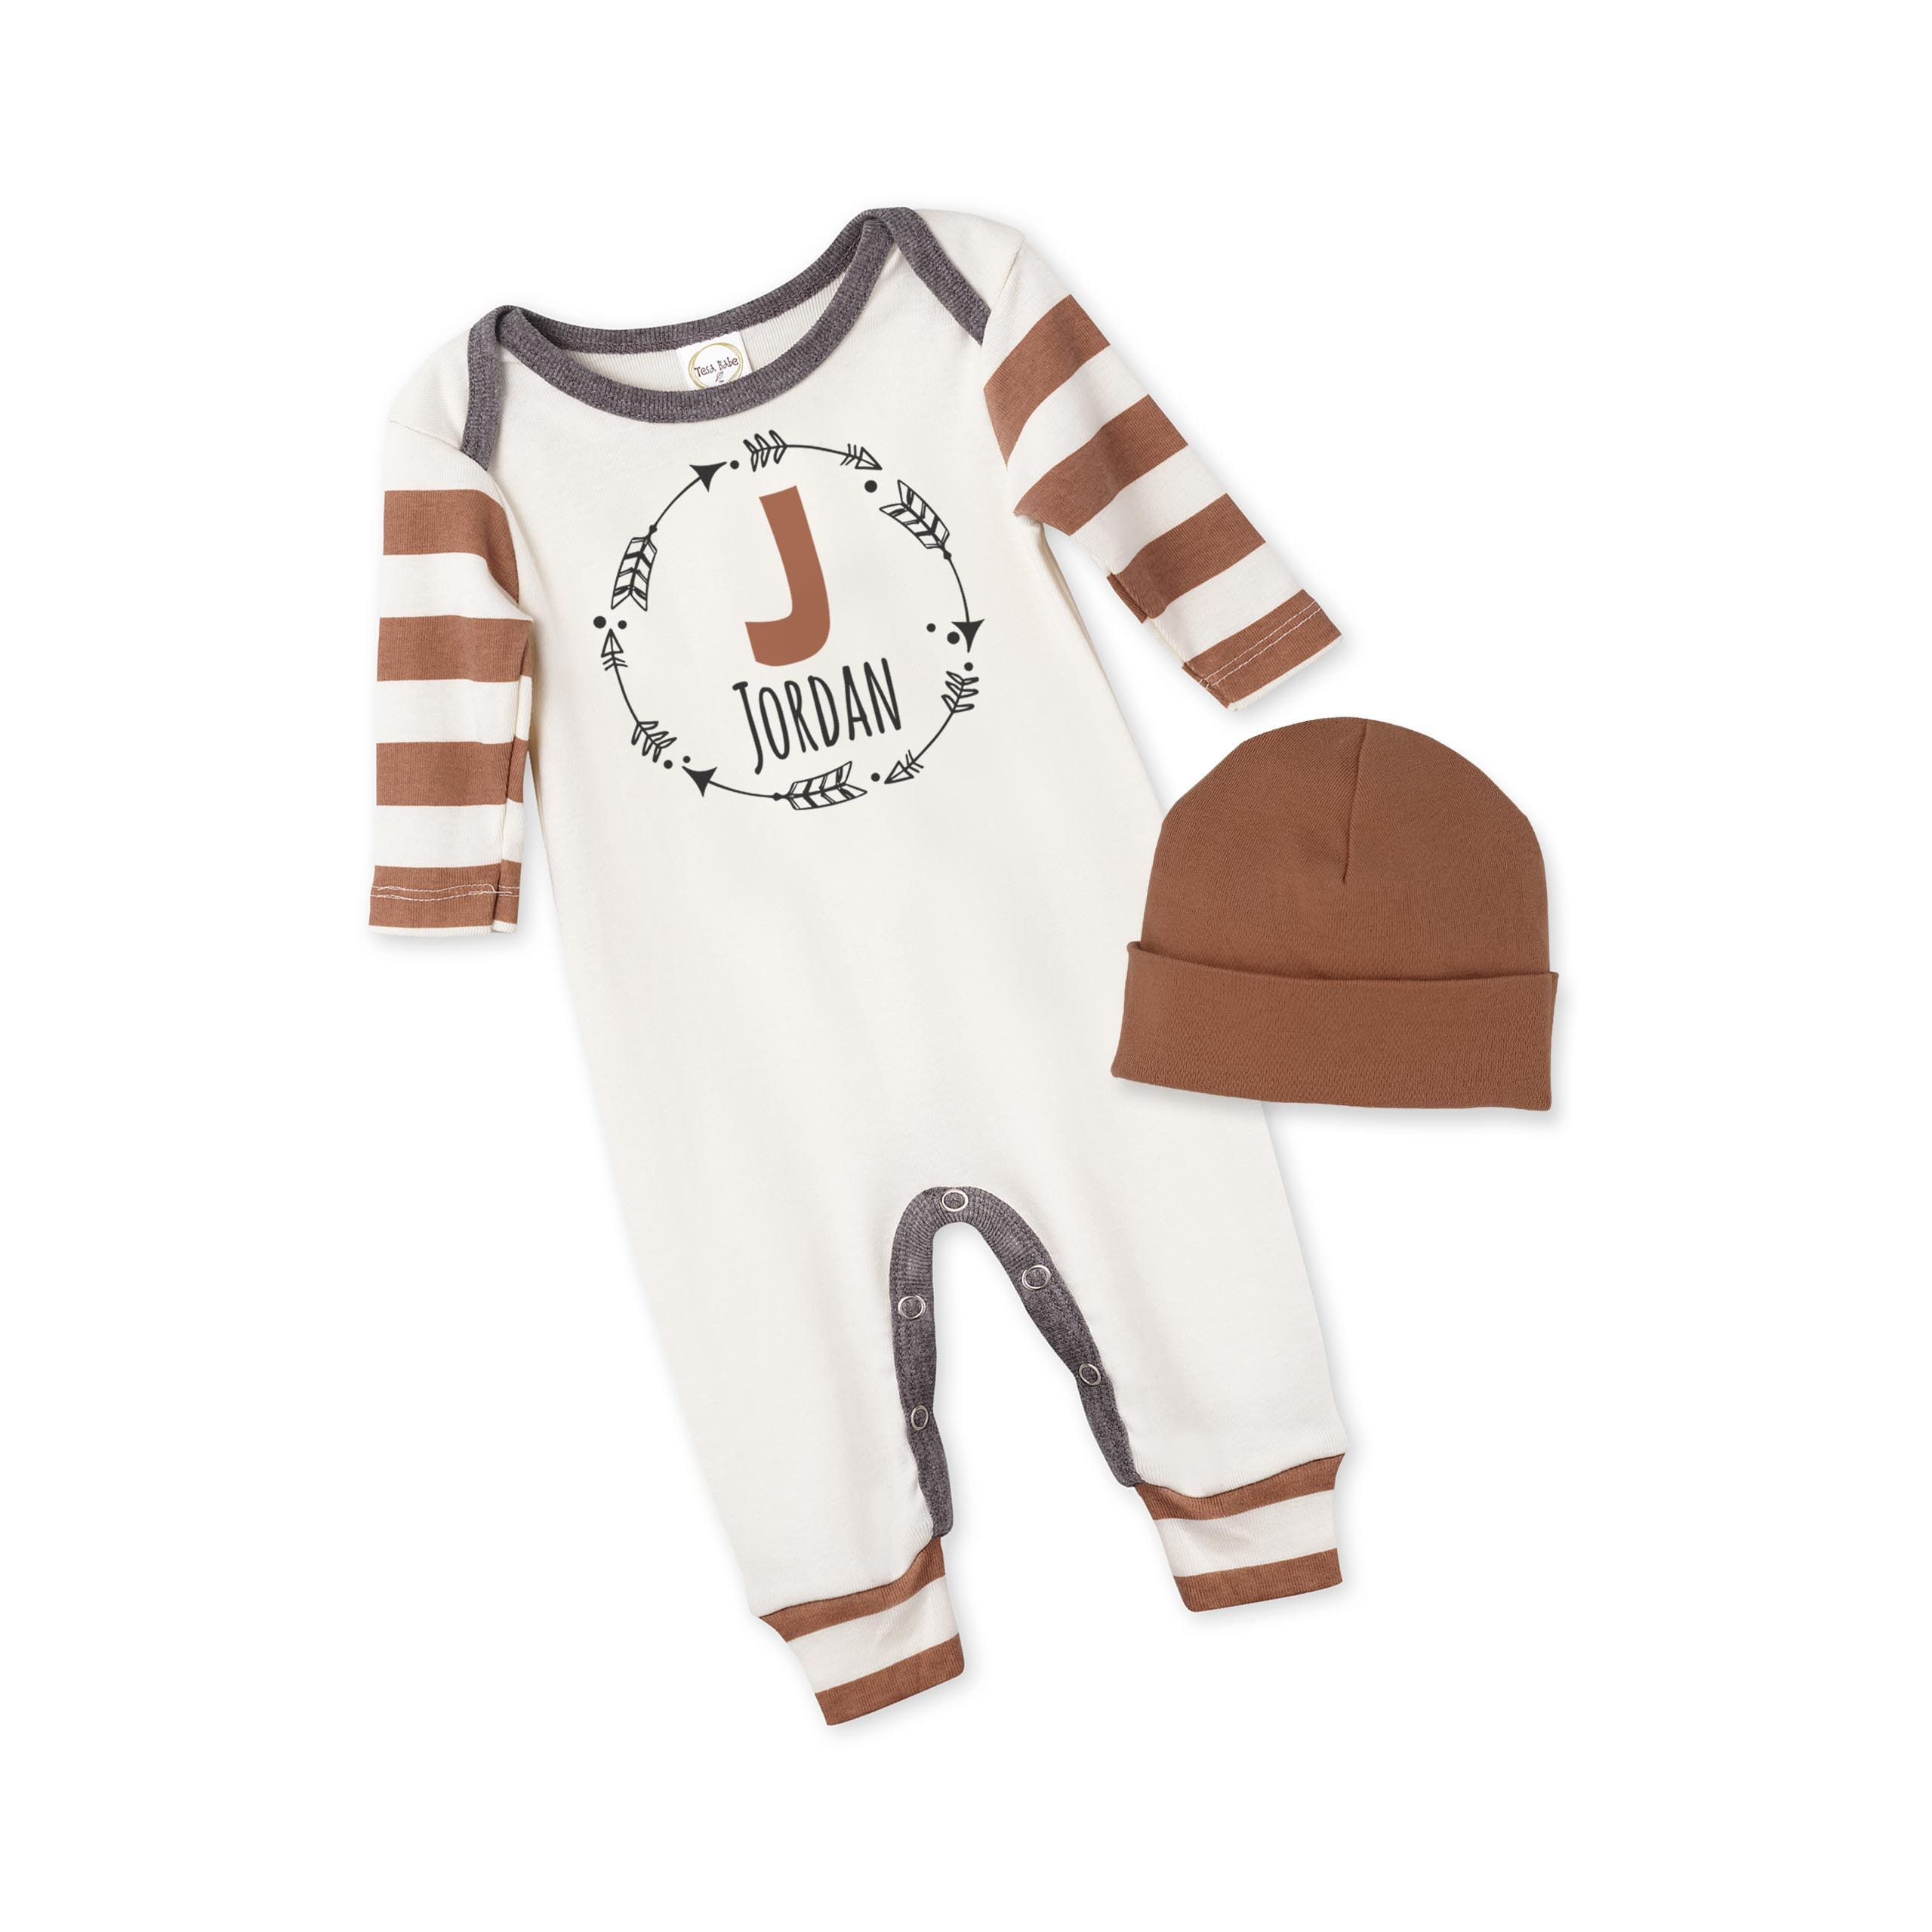 734e0d5fd11 Personalized Newborn Boy Coming Home Outfit